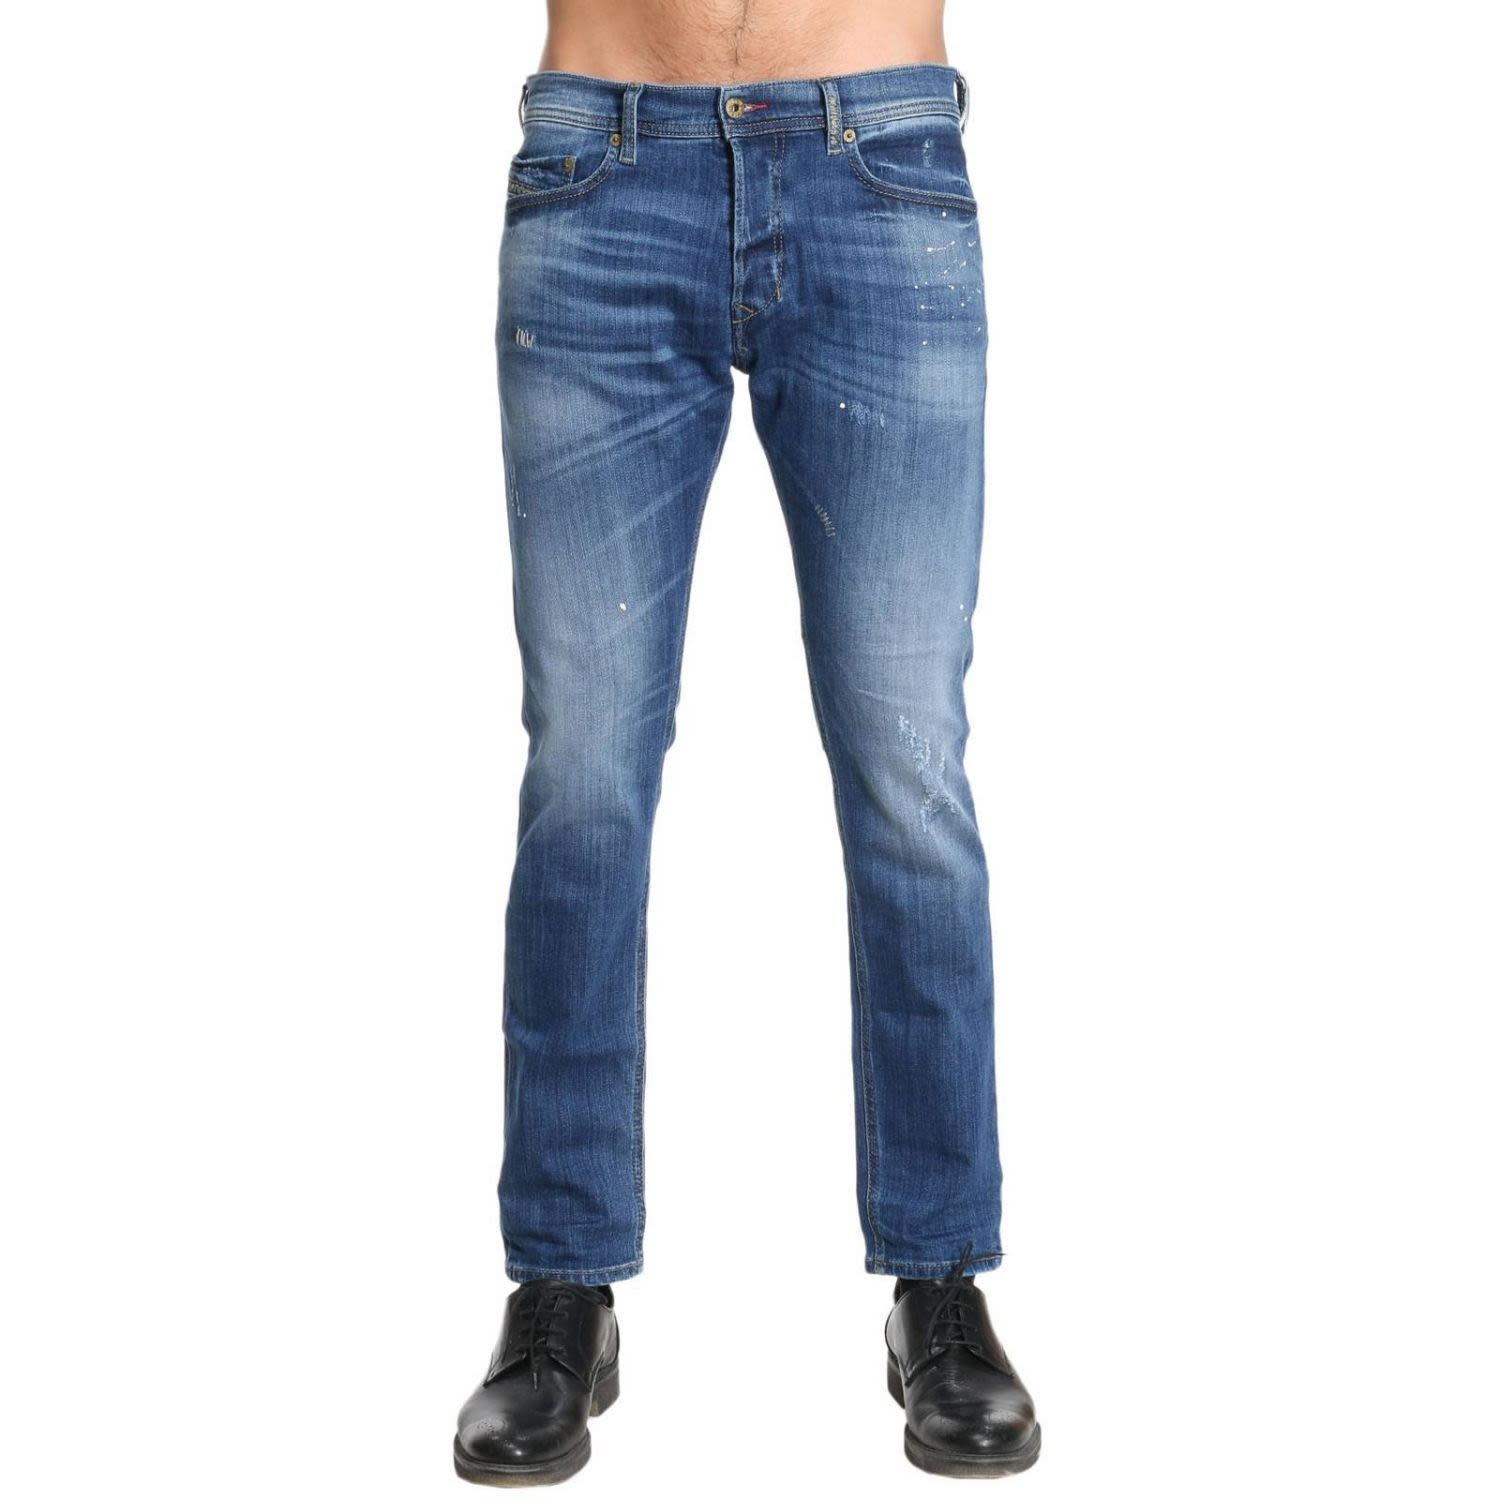 Jeans Pants Men Diesel